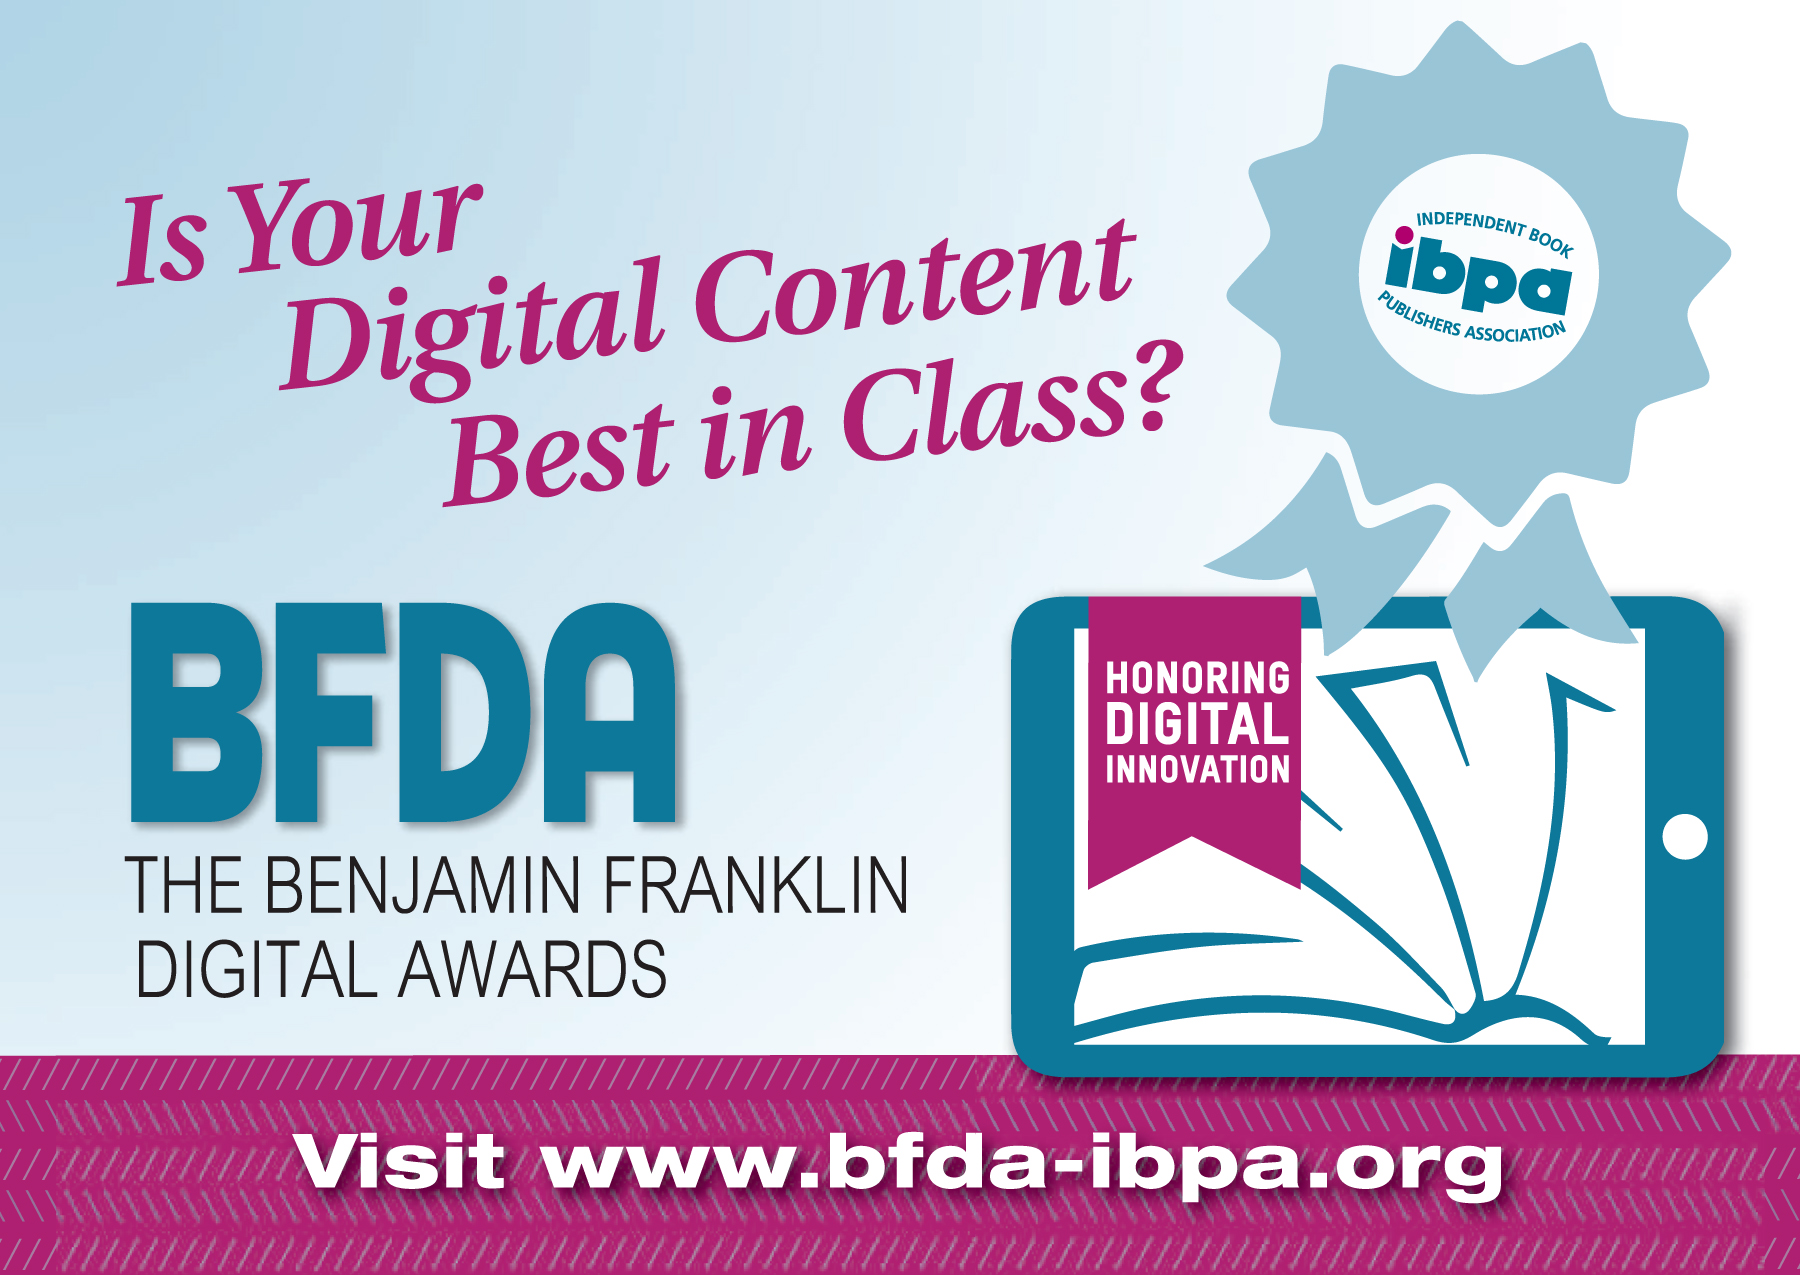 Benjamin Franklin Digital Award